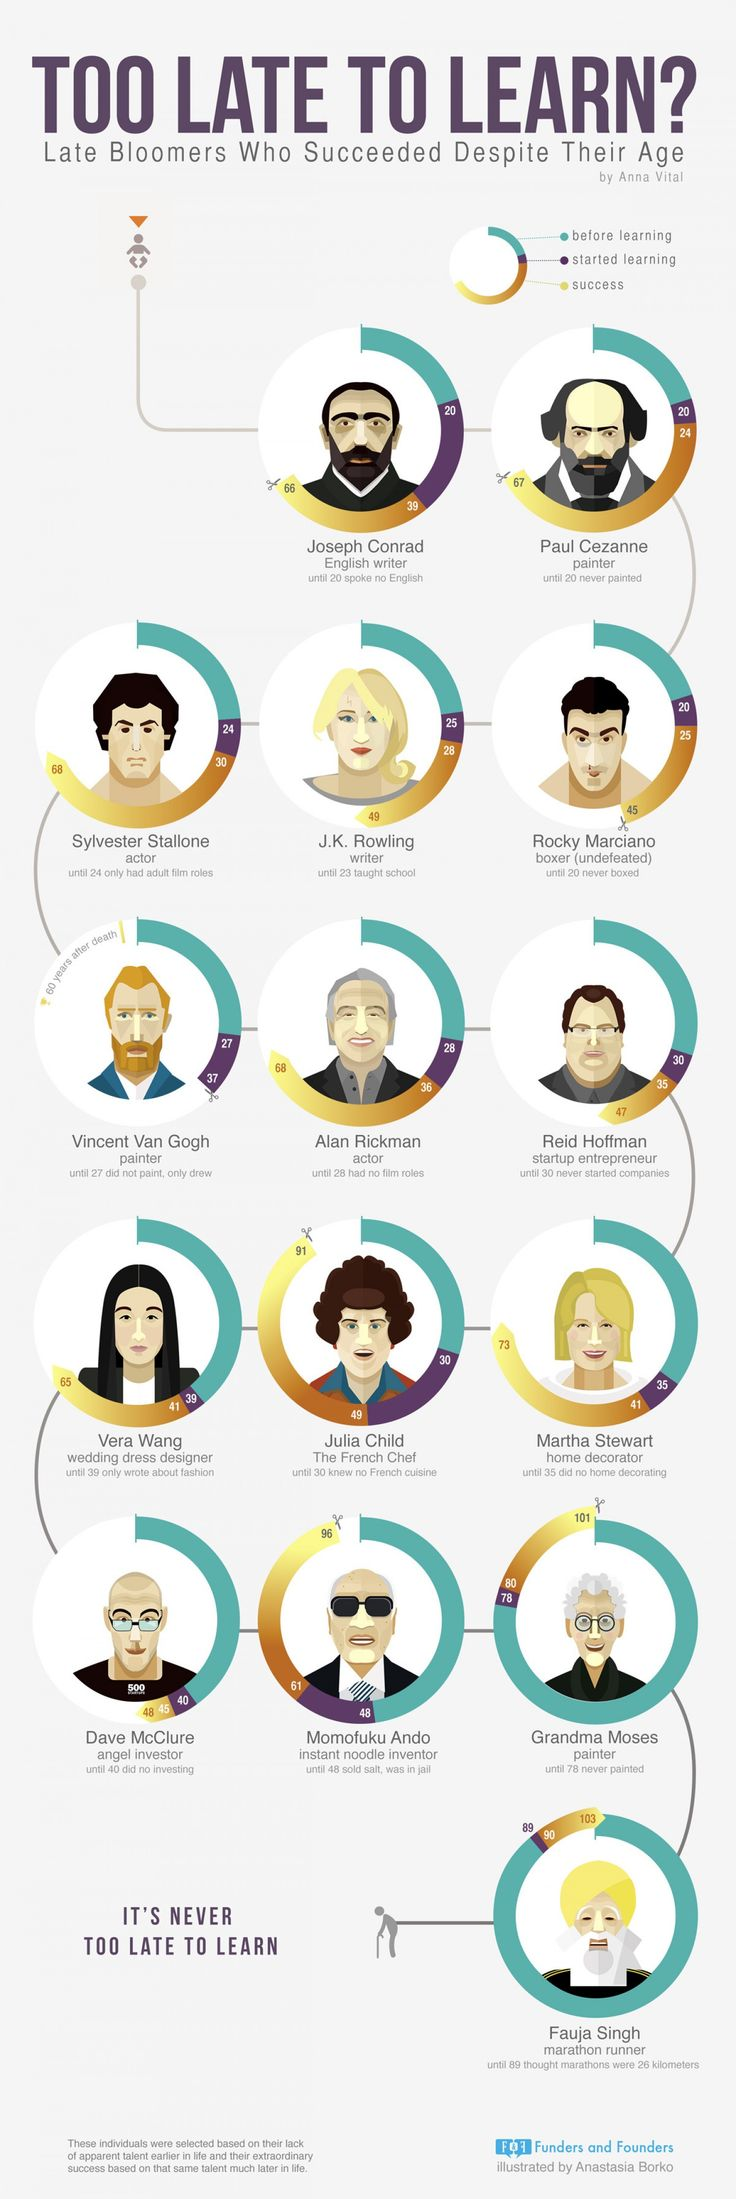 15 Late Bloomers Who Found Massive Success (Infographic) | Inc.com